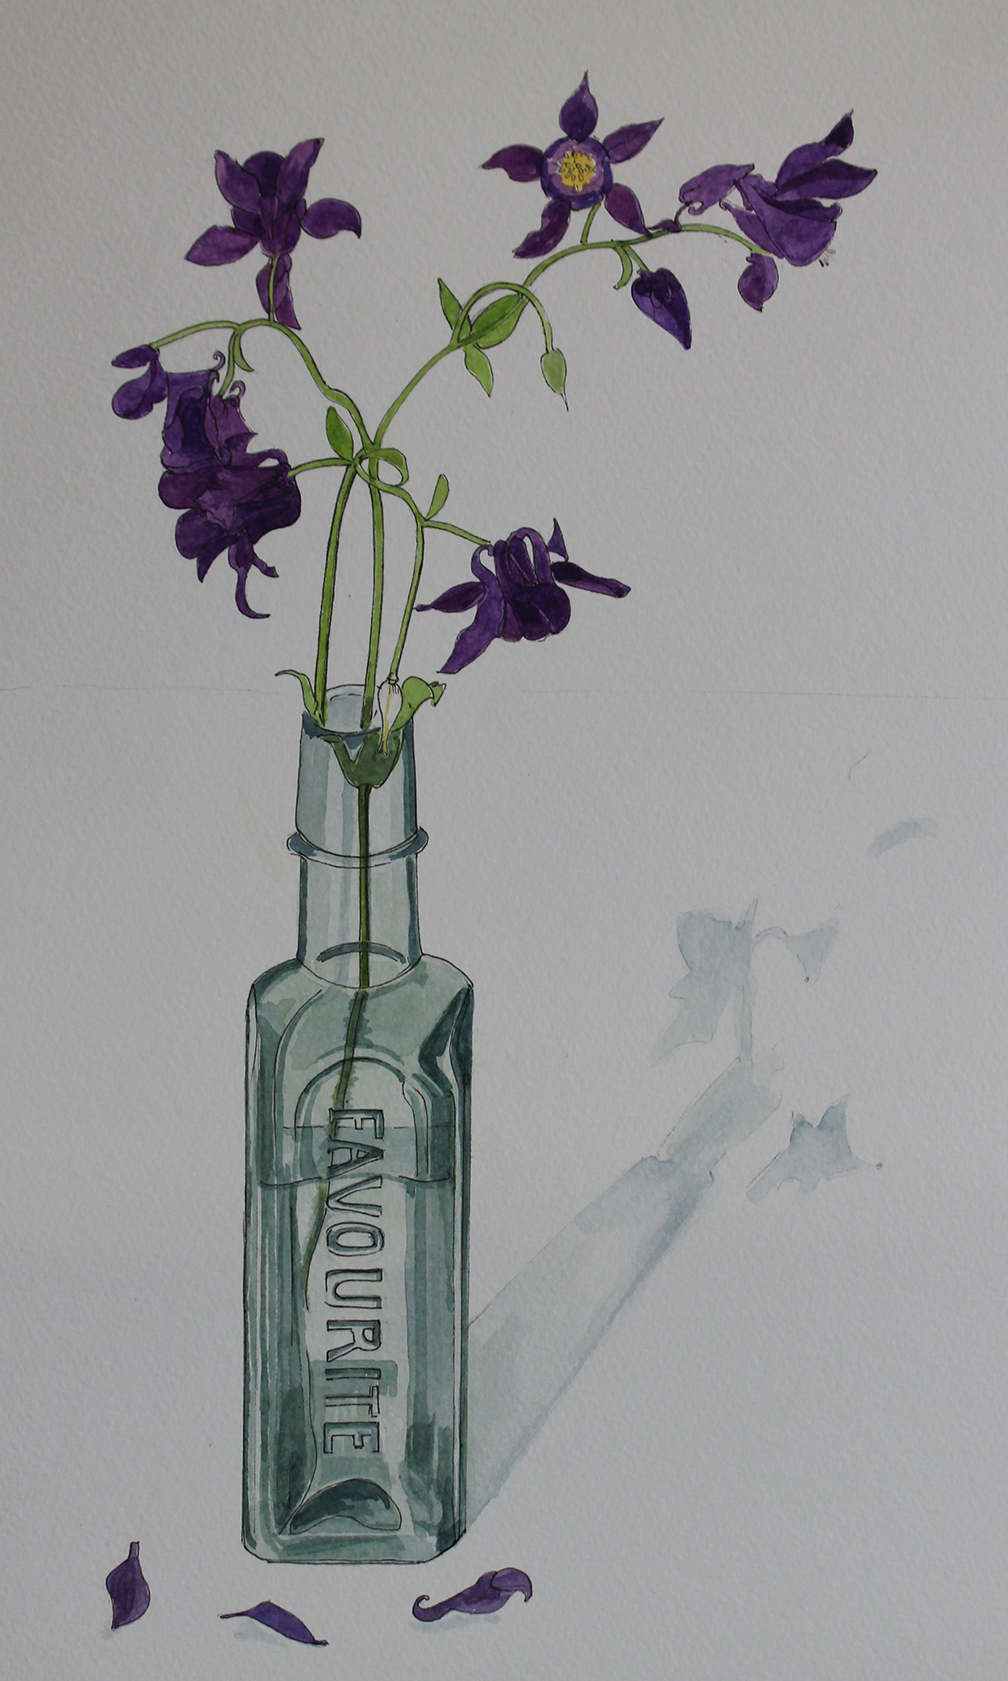 Favourite Flowers - Aquilegia